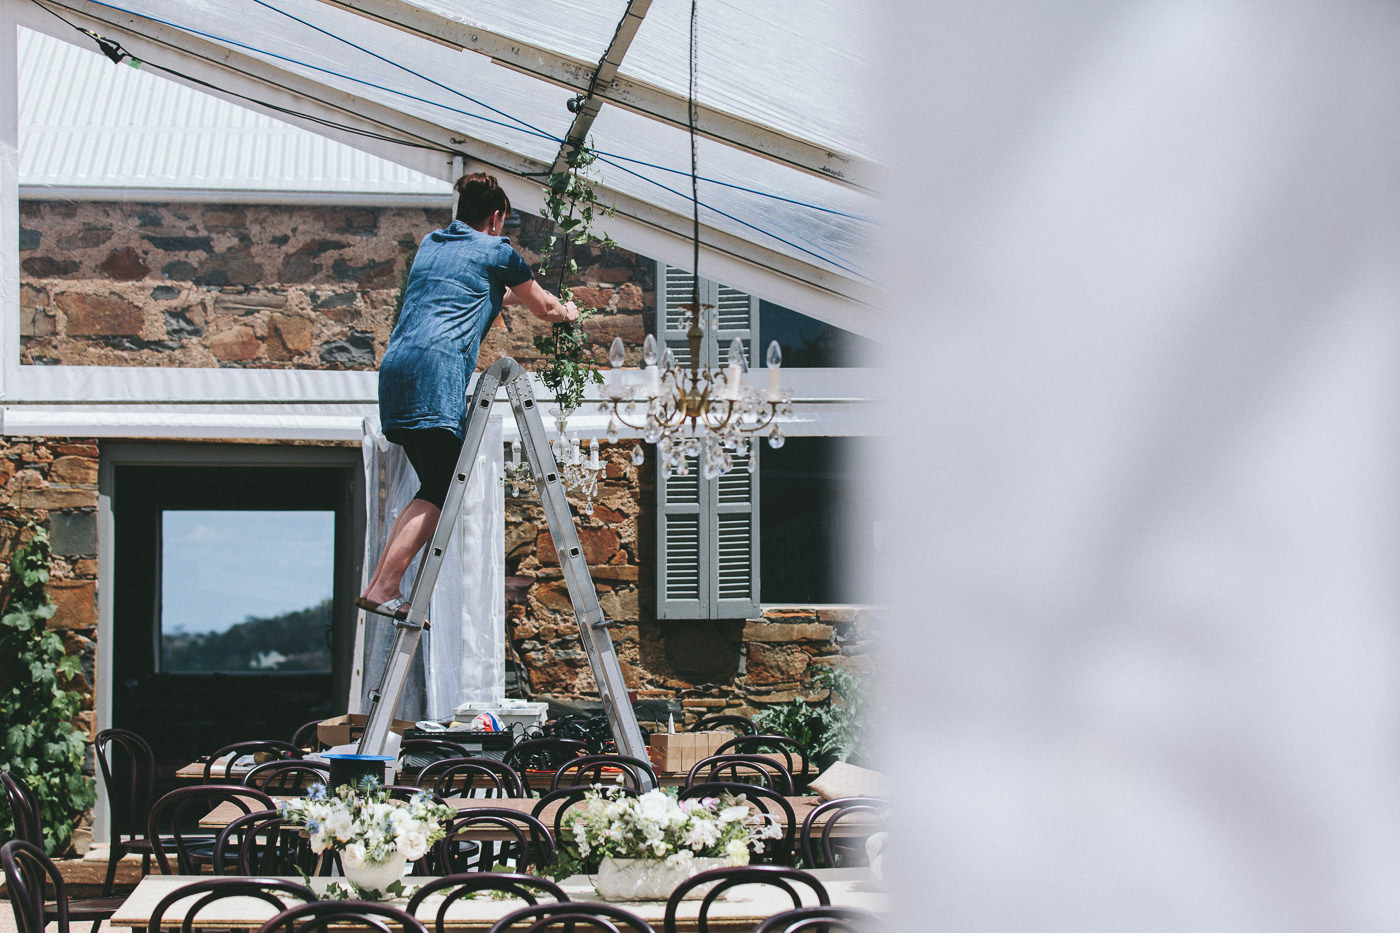 Stylist at work in a clear marquee on a property wedding